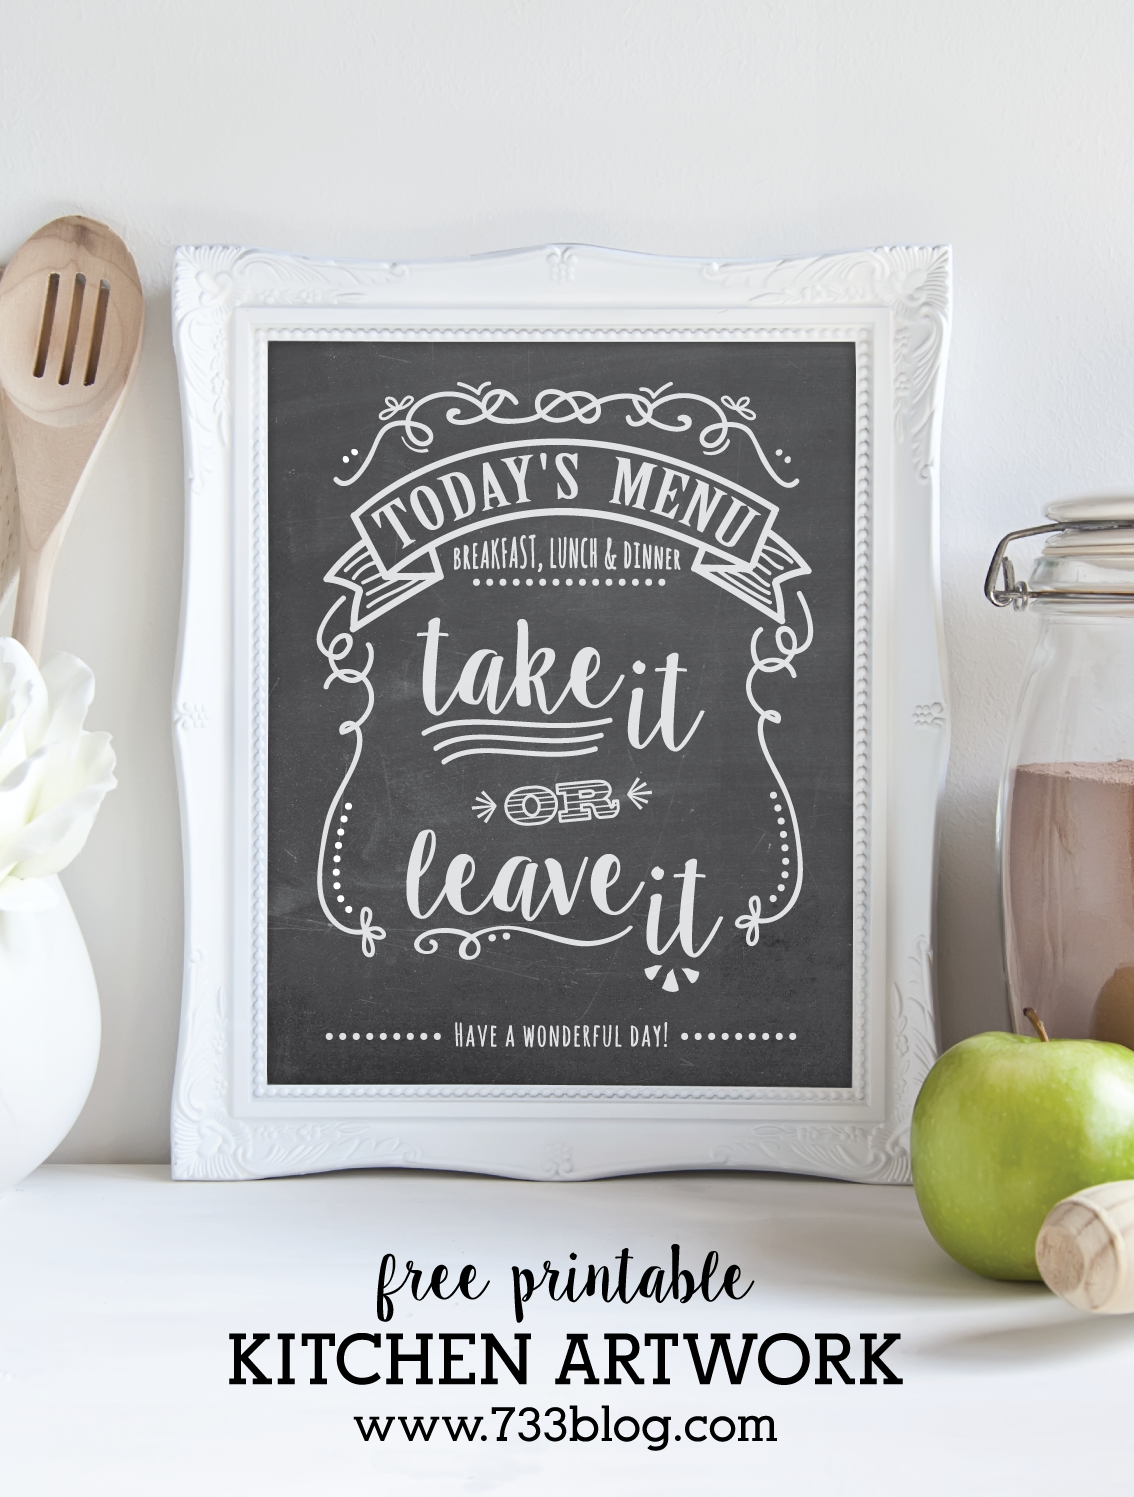 Download And Print This Humorous Kitchen Chalkboard Art For All The Picky Eaters In Your House Chalkboard Art Kitchen Chalkboard Chalkboard